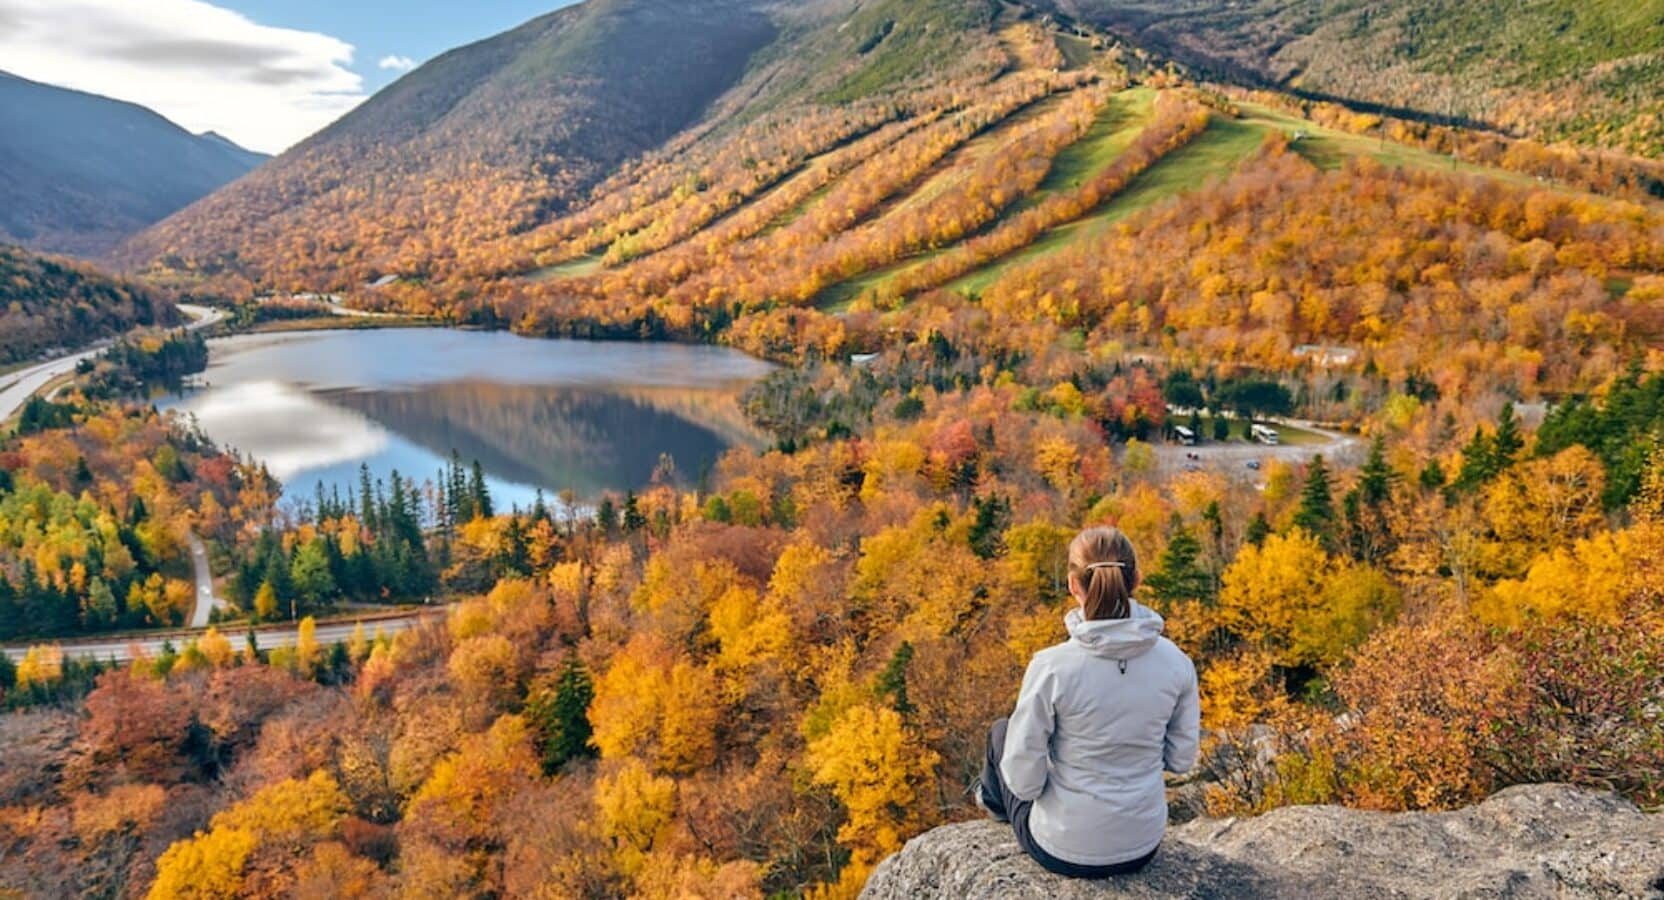 The Best Places to View Fall Foliage in New Hampshire